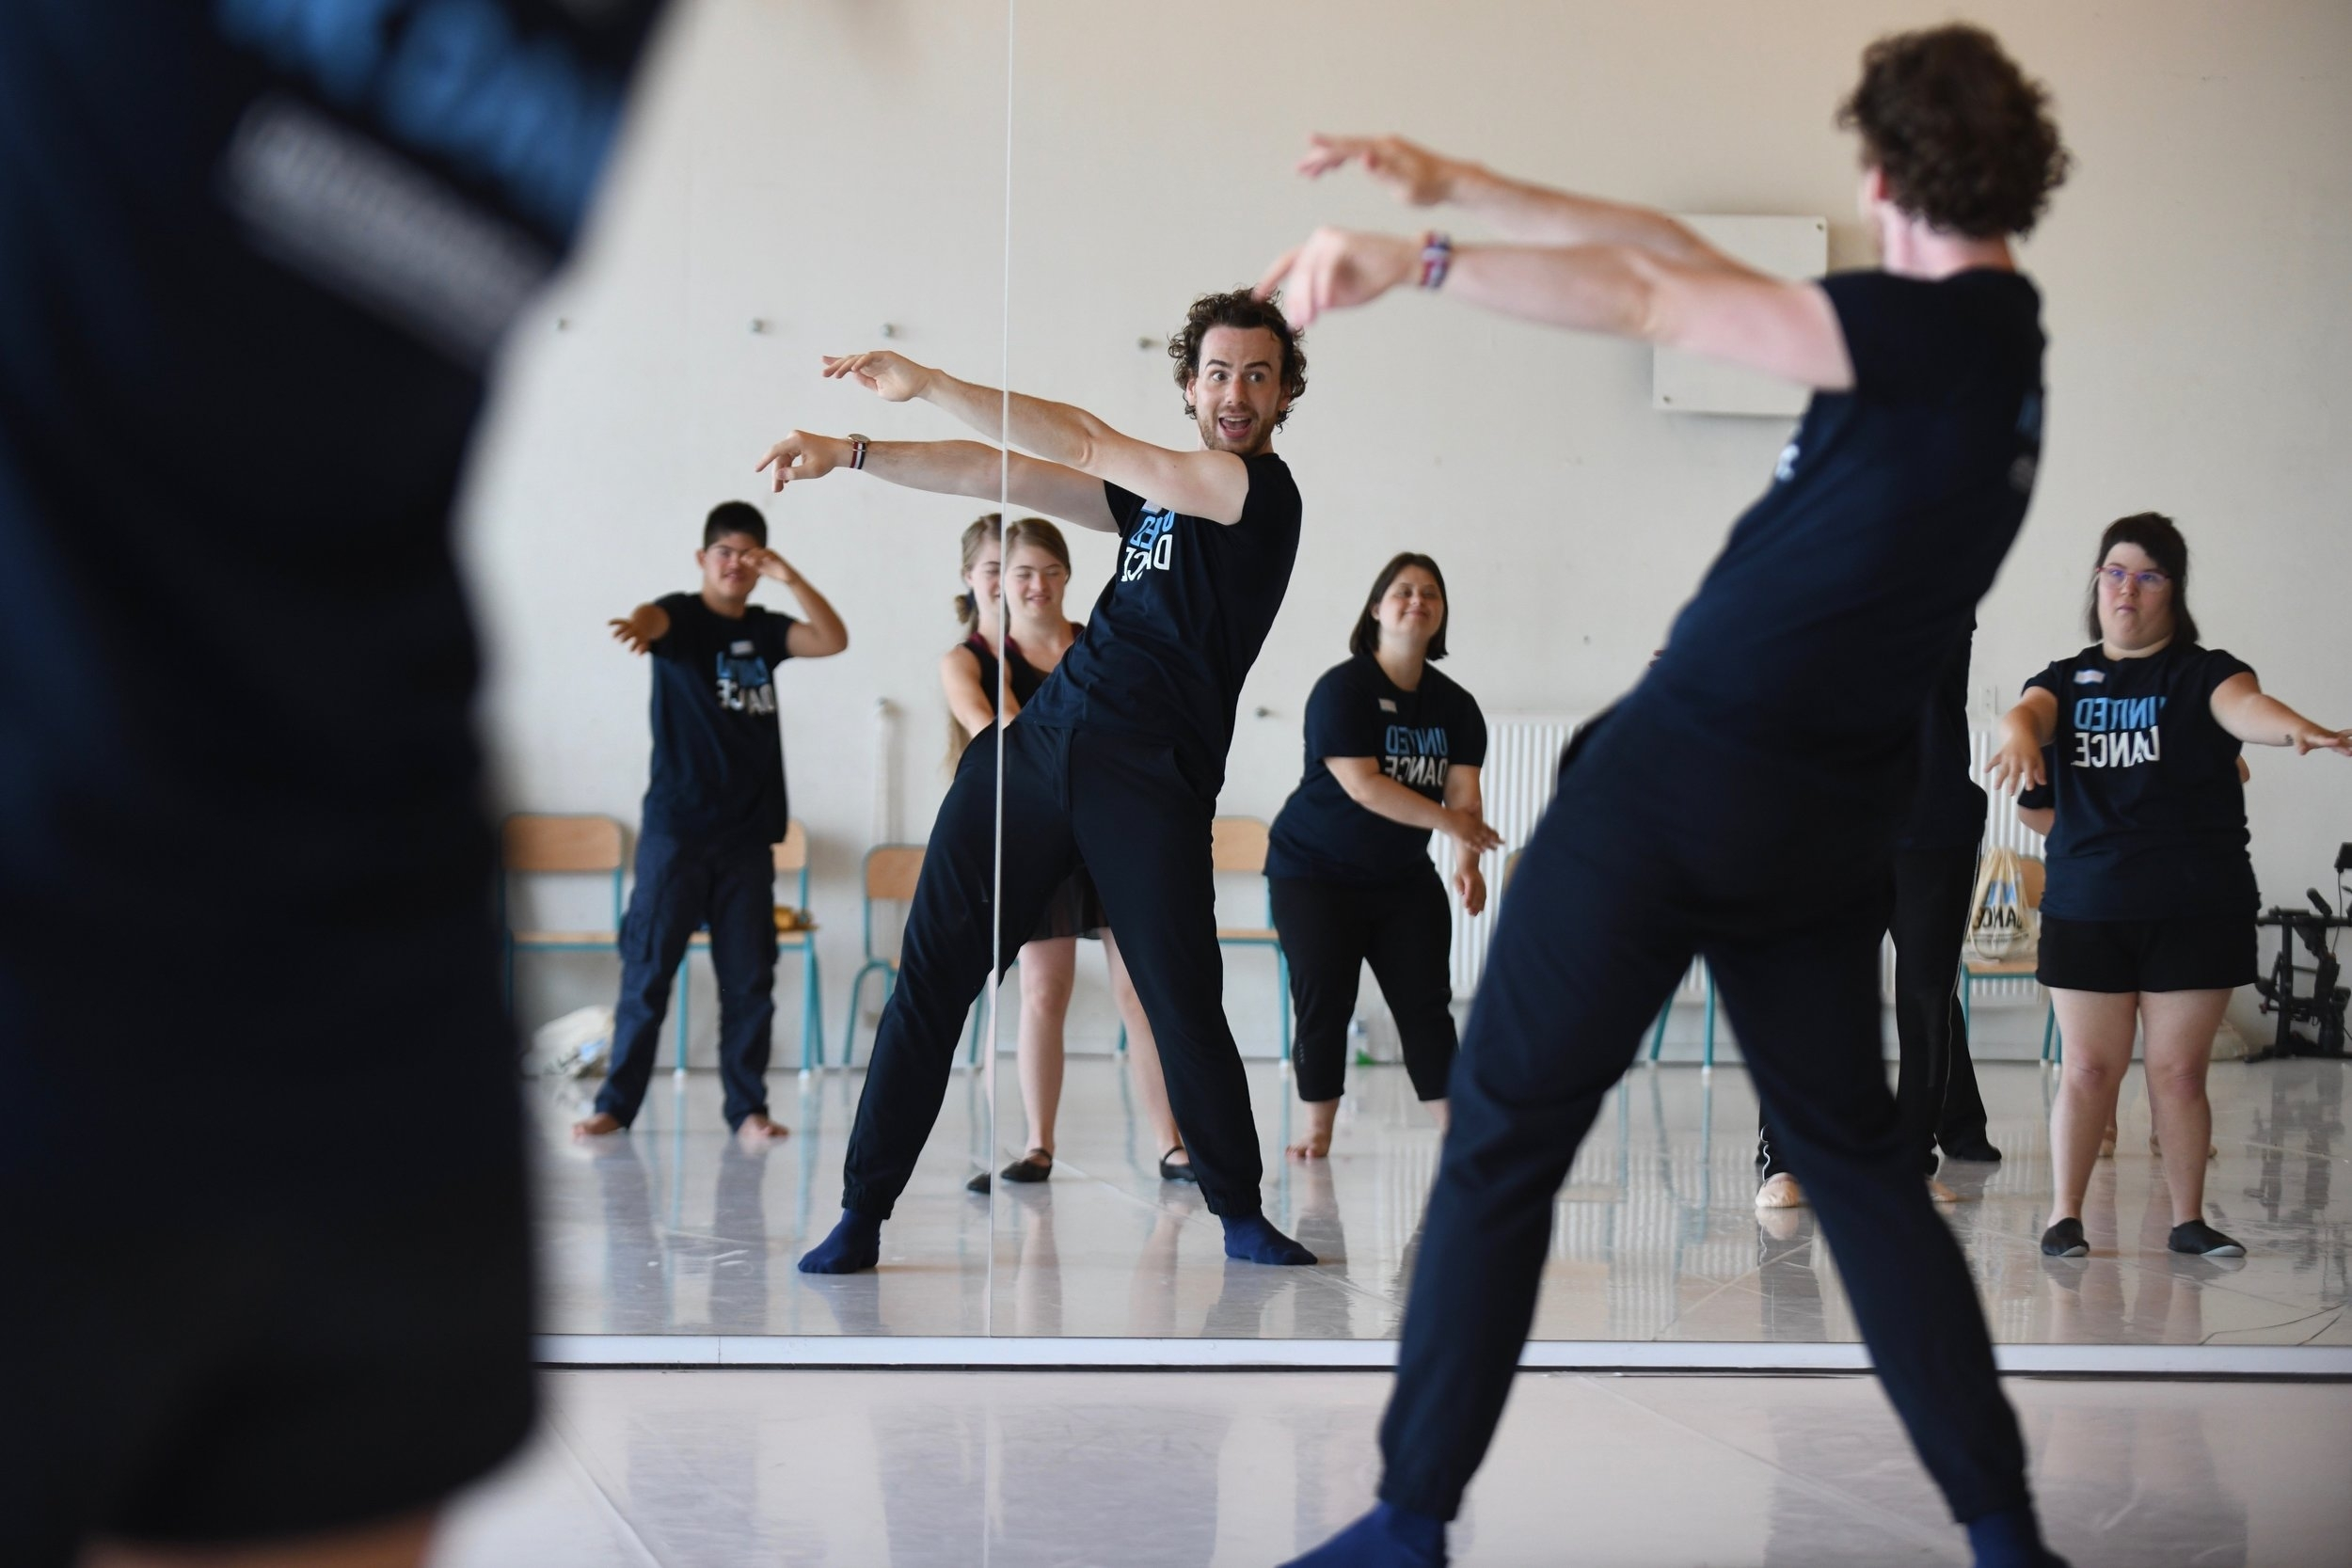 Boris Richir teaching a United Dance class